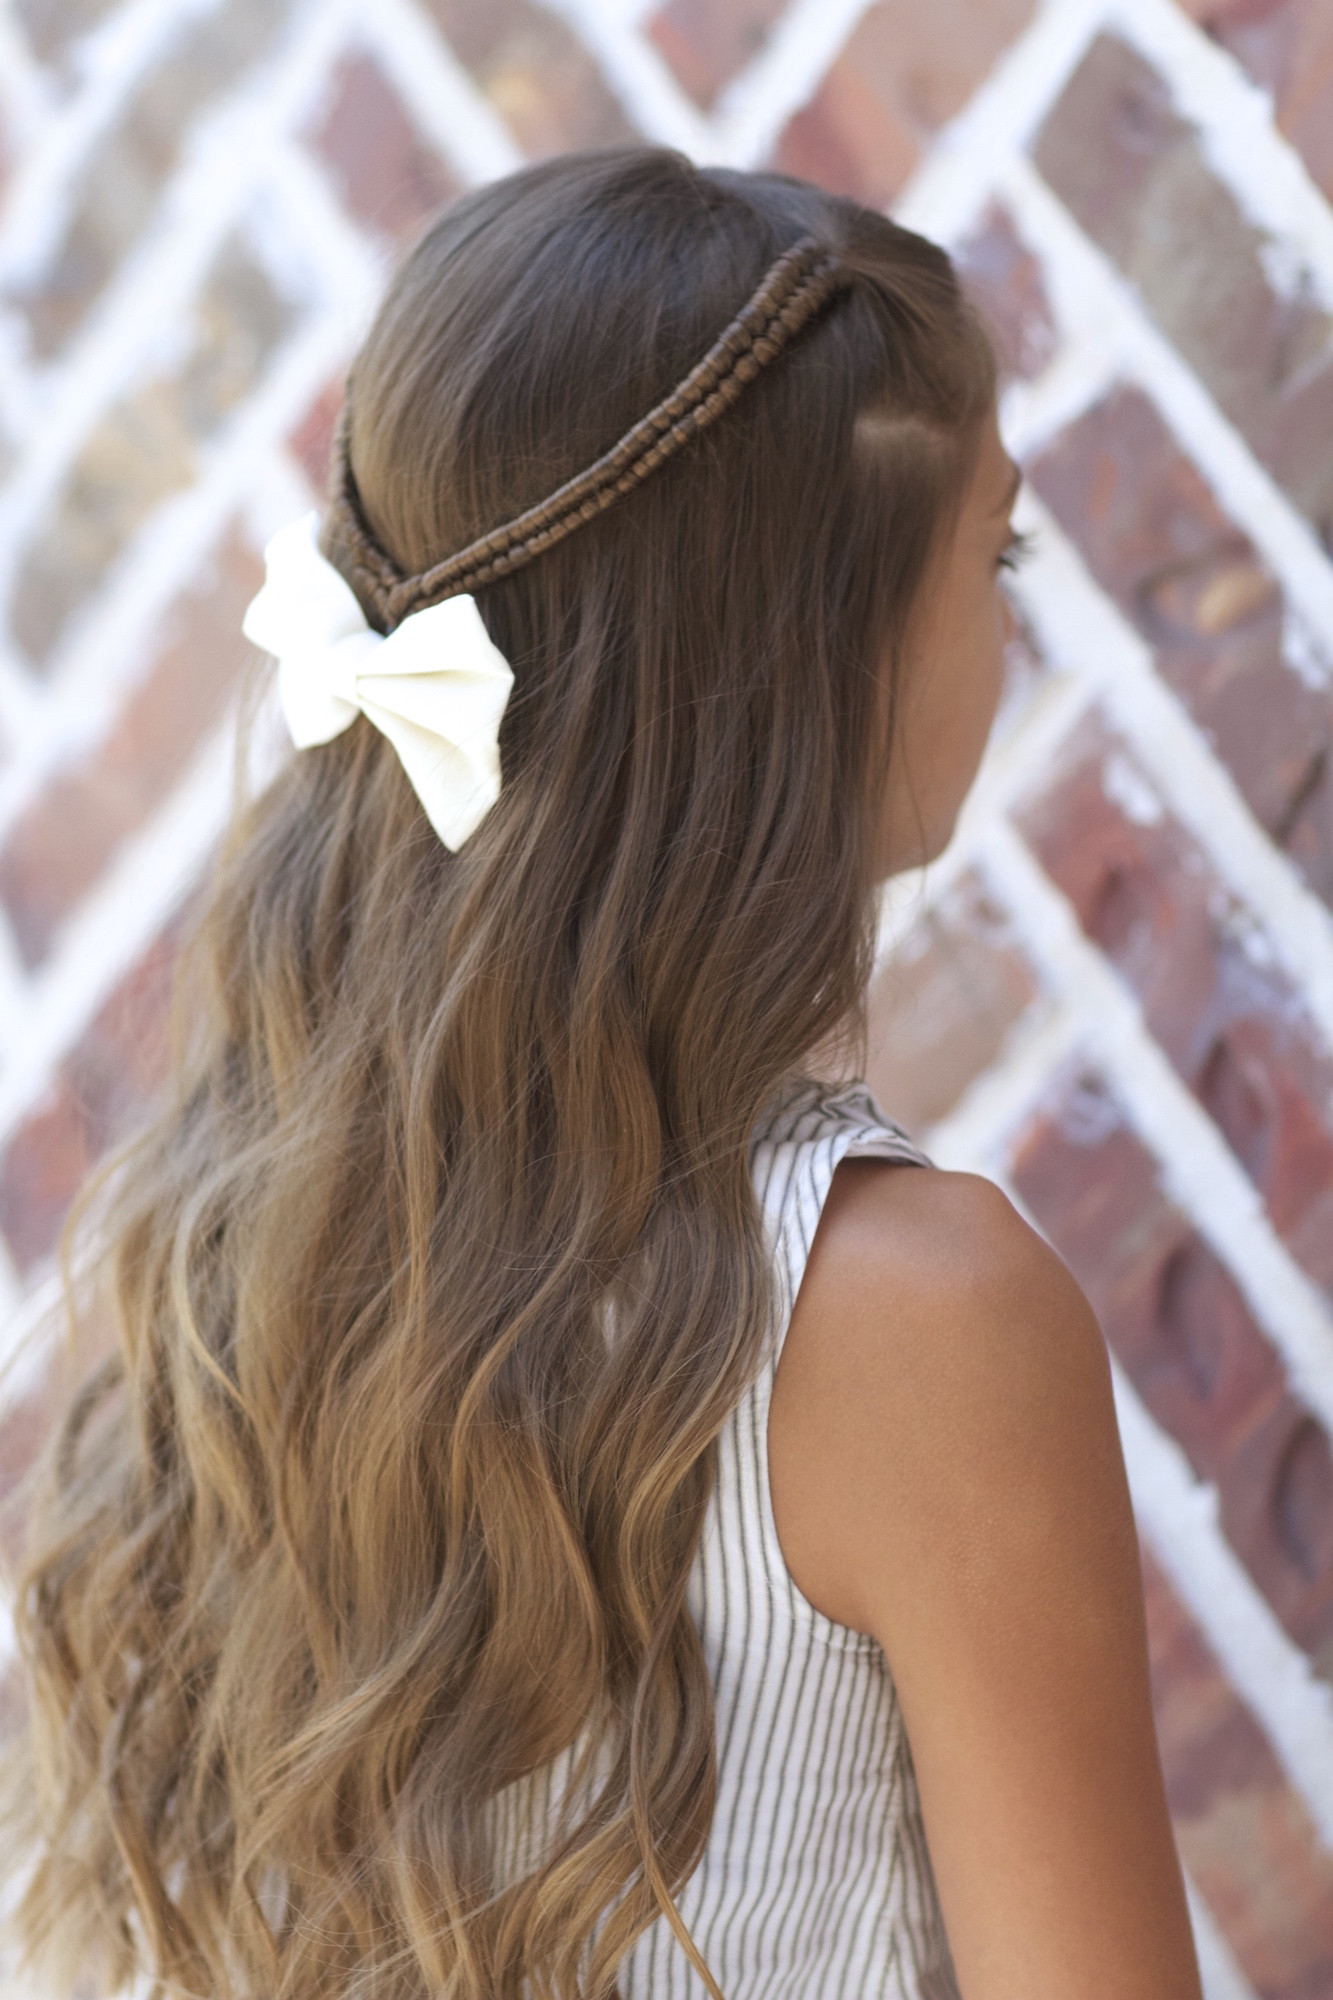 Best ideas about Pretty Girls Hairstyles . Save or Pin Infinity Braid Tieback Back to School Hairstyles Now.